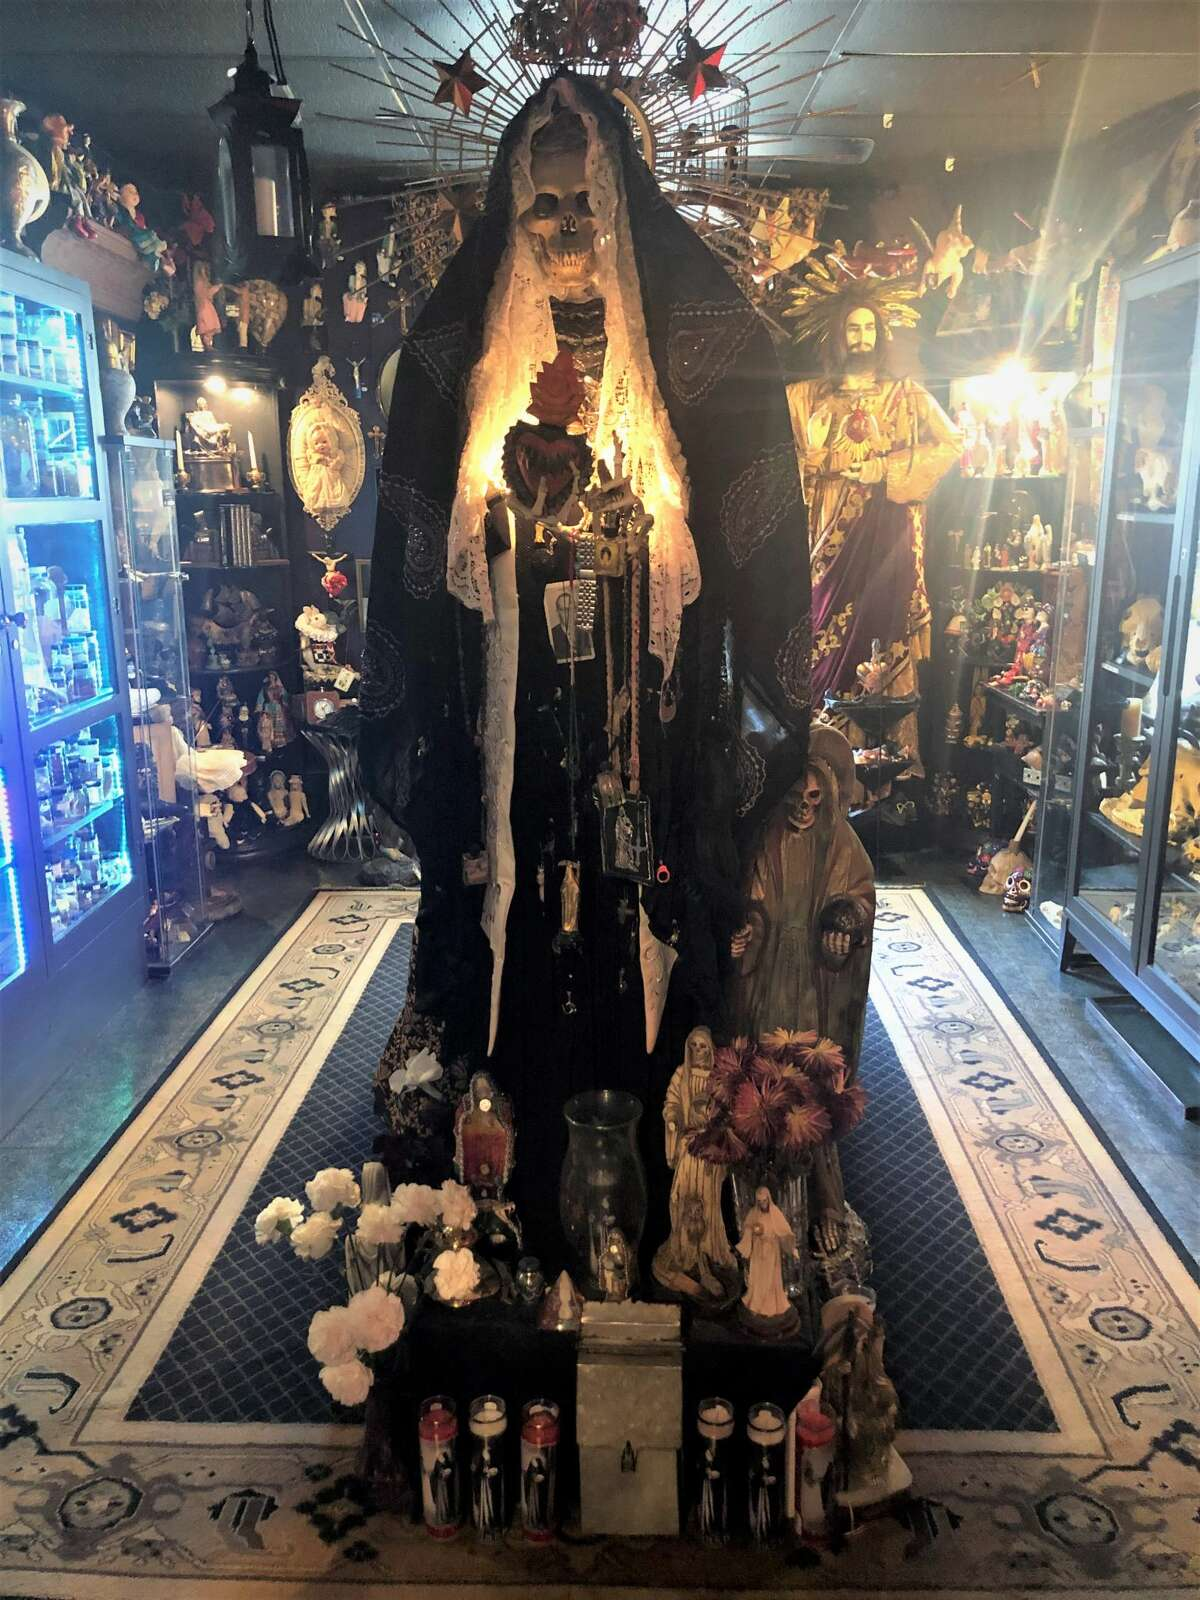 There was an altar for Santa Muerte, the patron saint of the outcast.